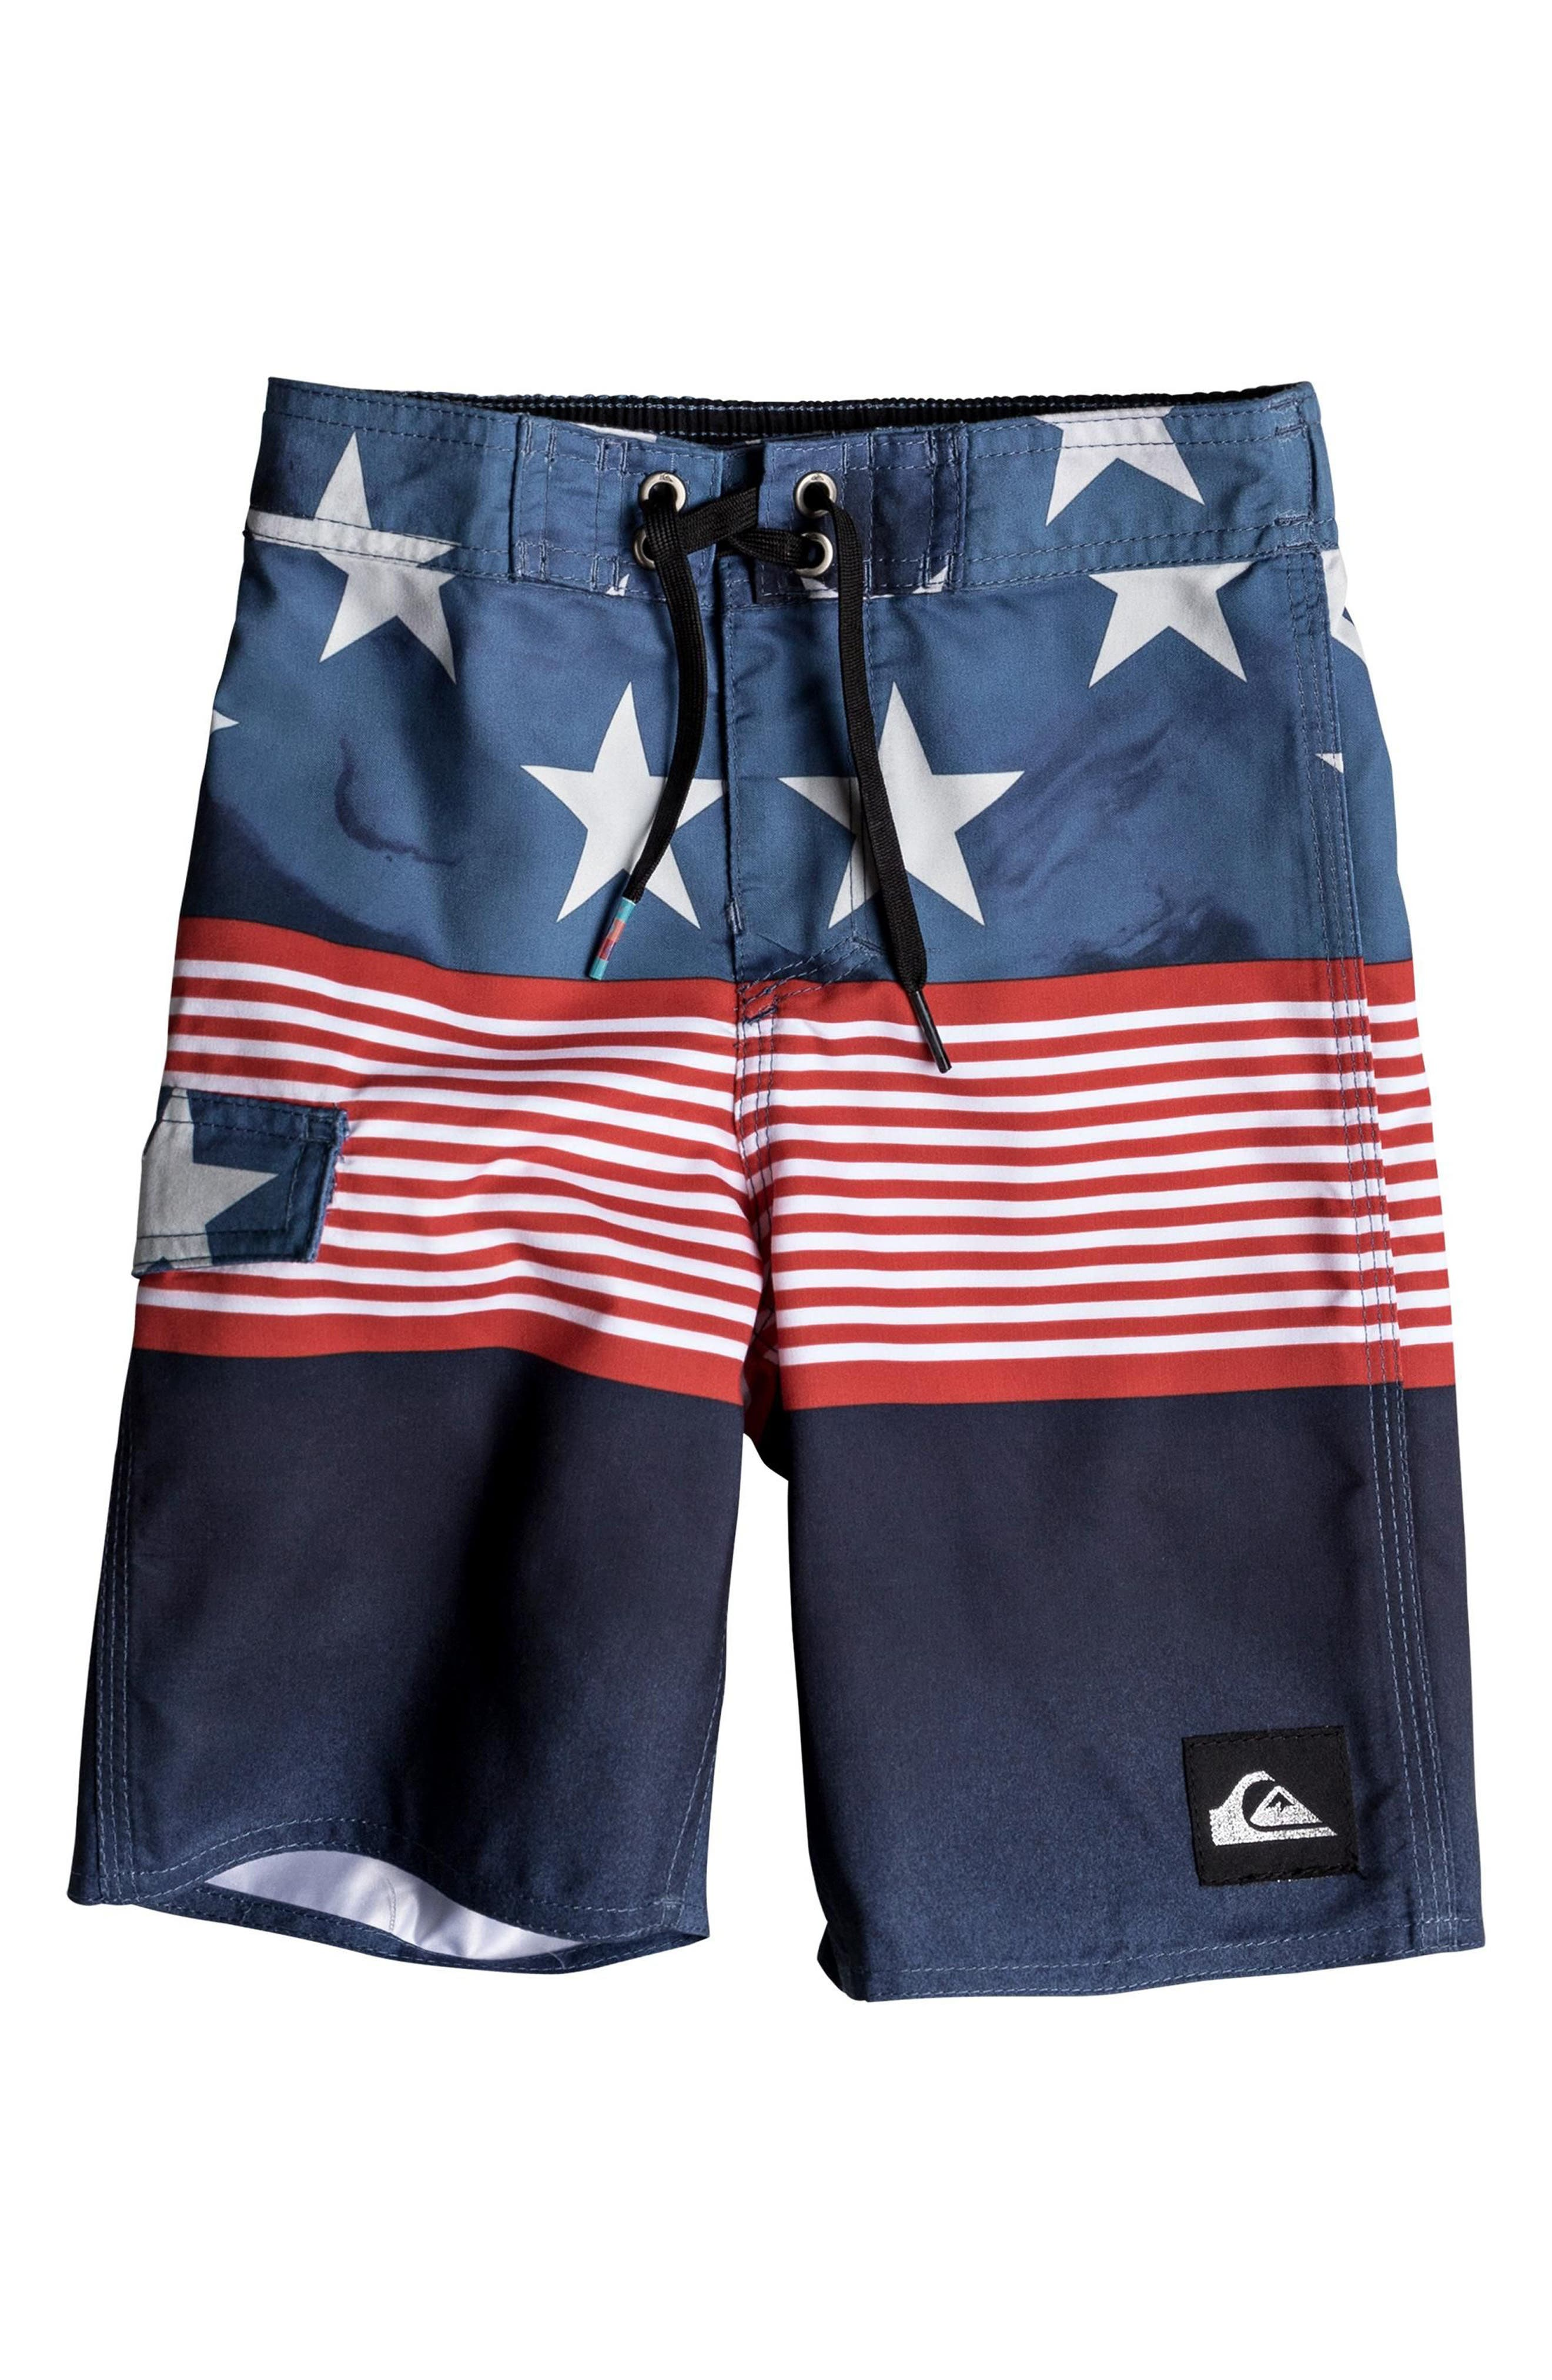 Division Independent Board Shorts,                         Main,                         color, NAVY BLAZER